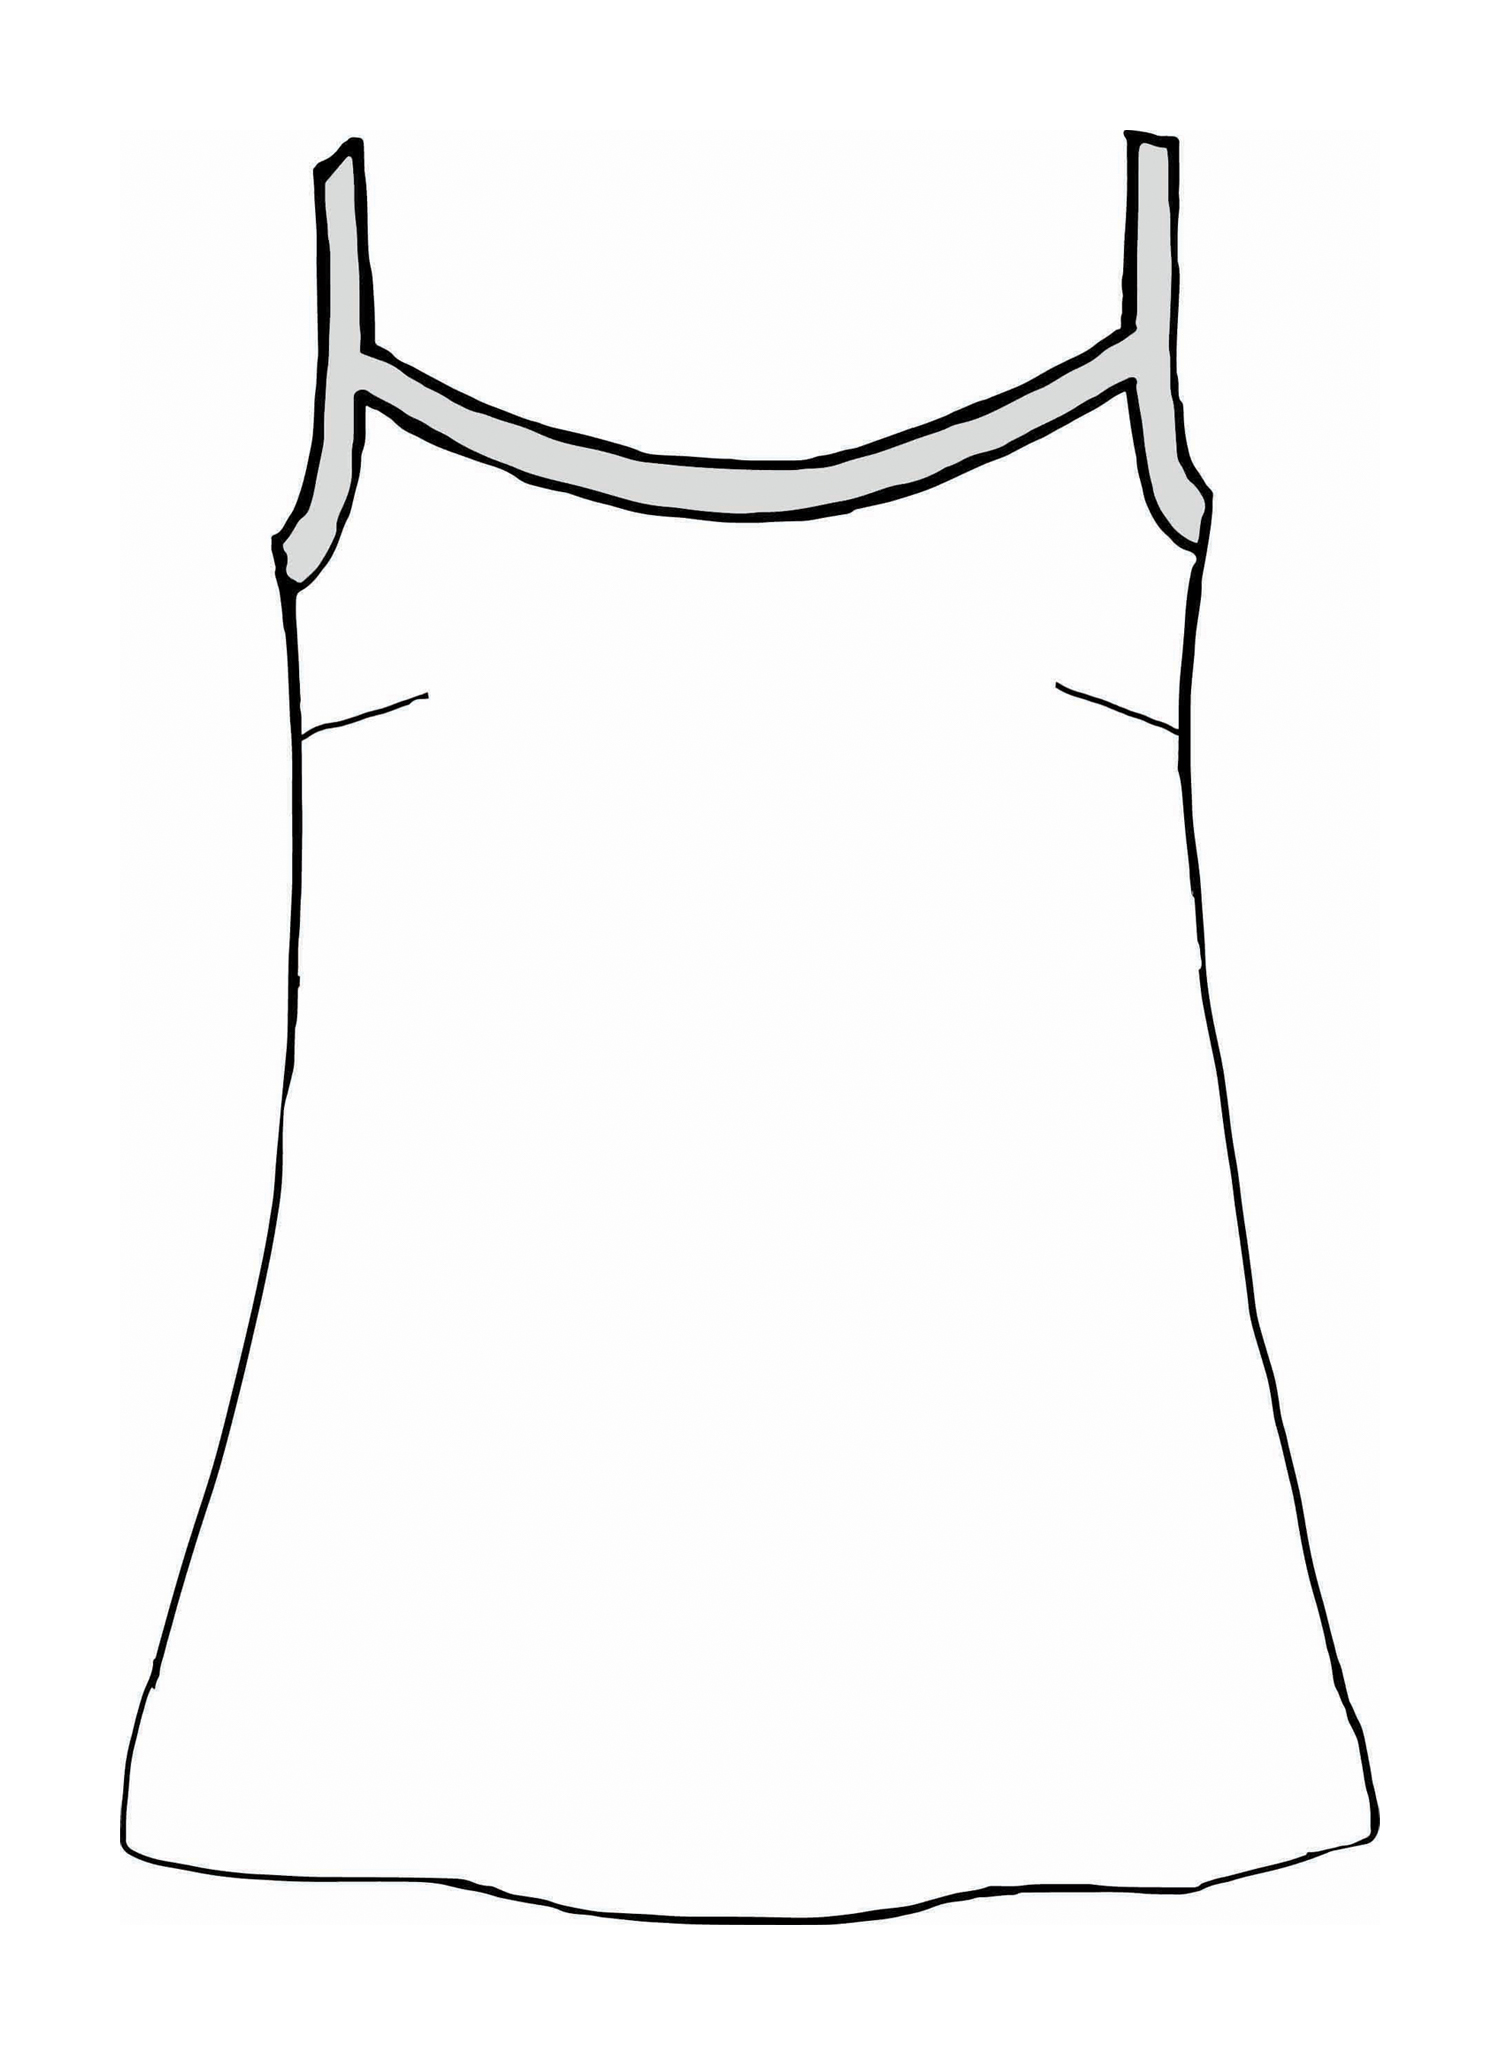 Upward Tunic sketch image